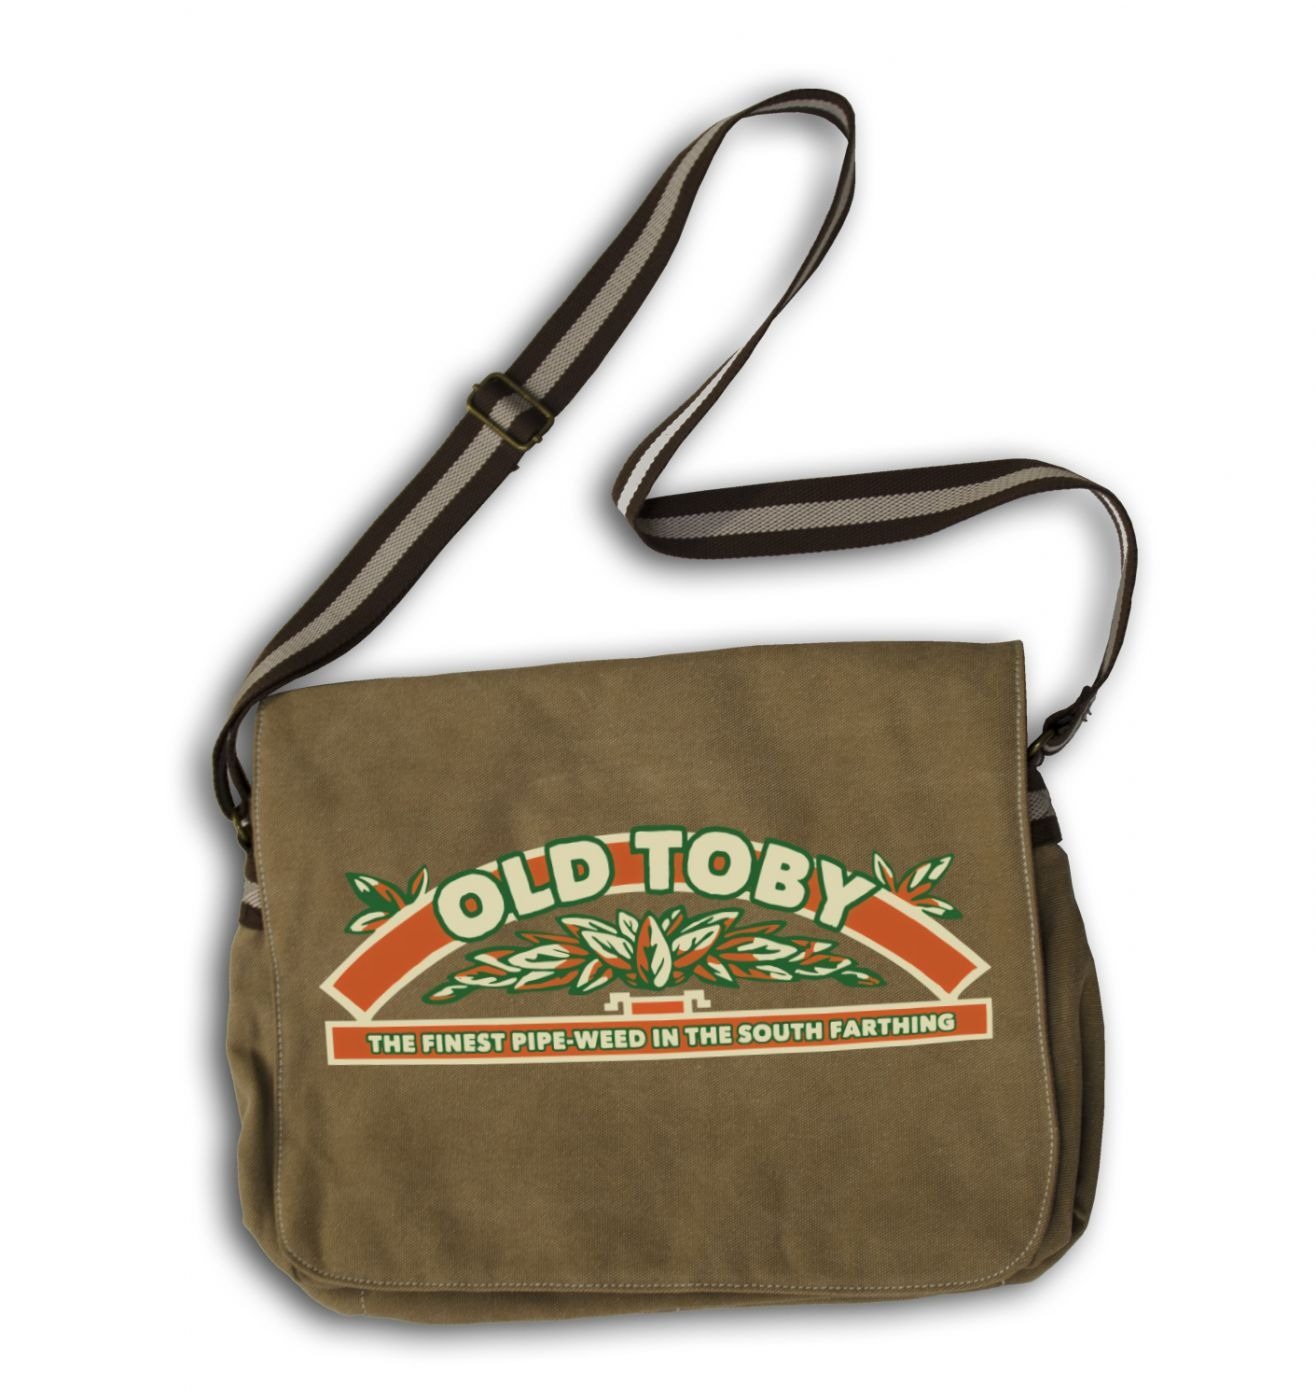 Old Toby Pipe Weed messenger bag